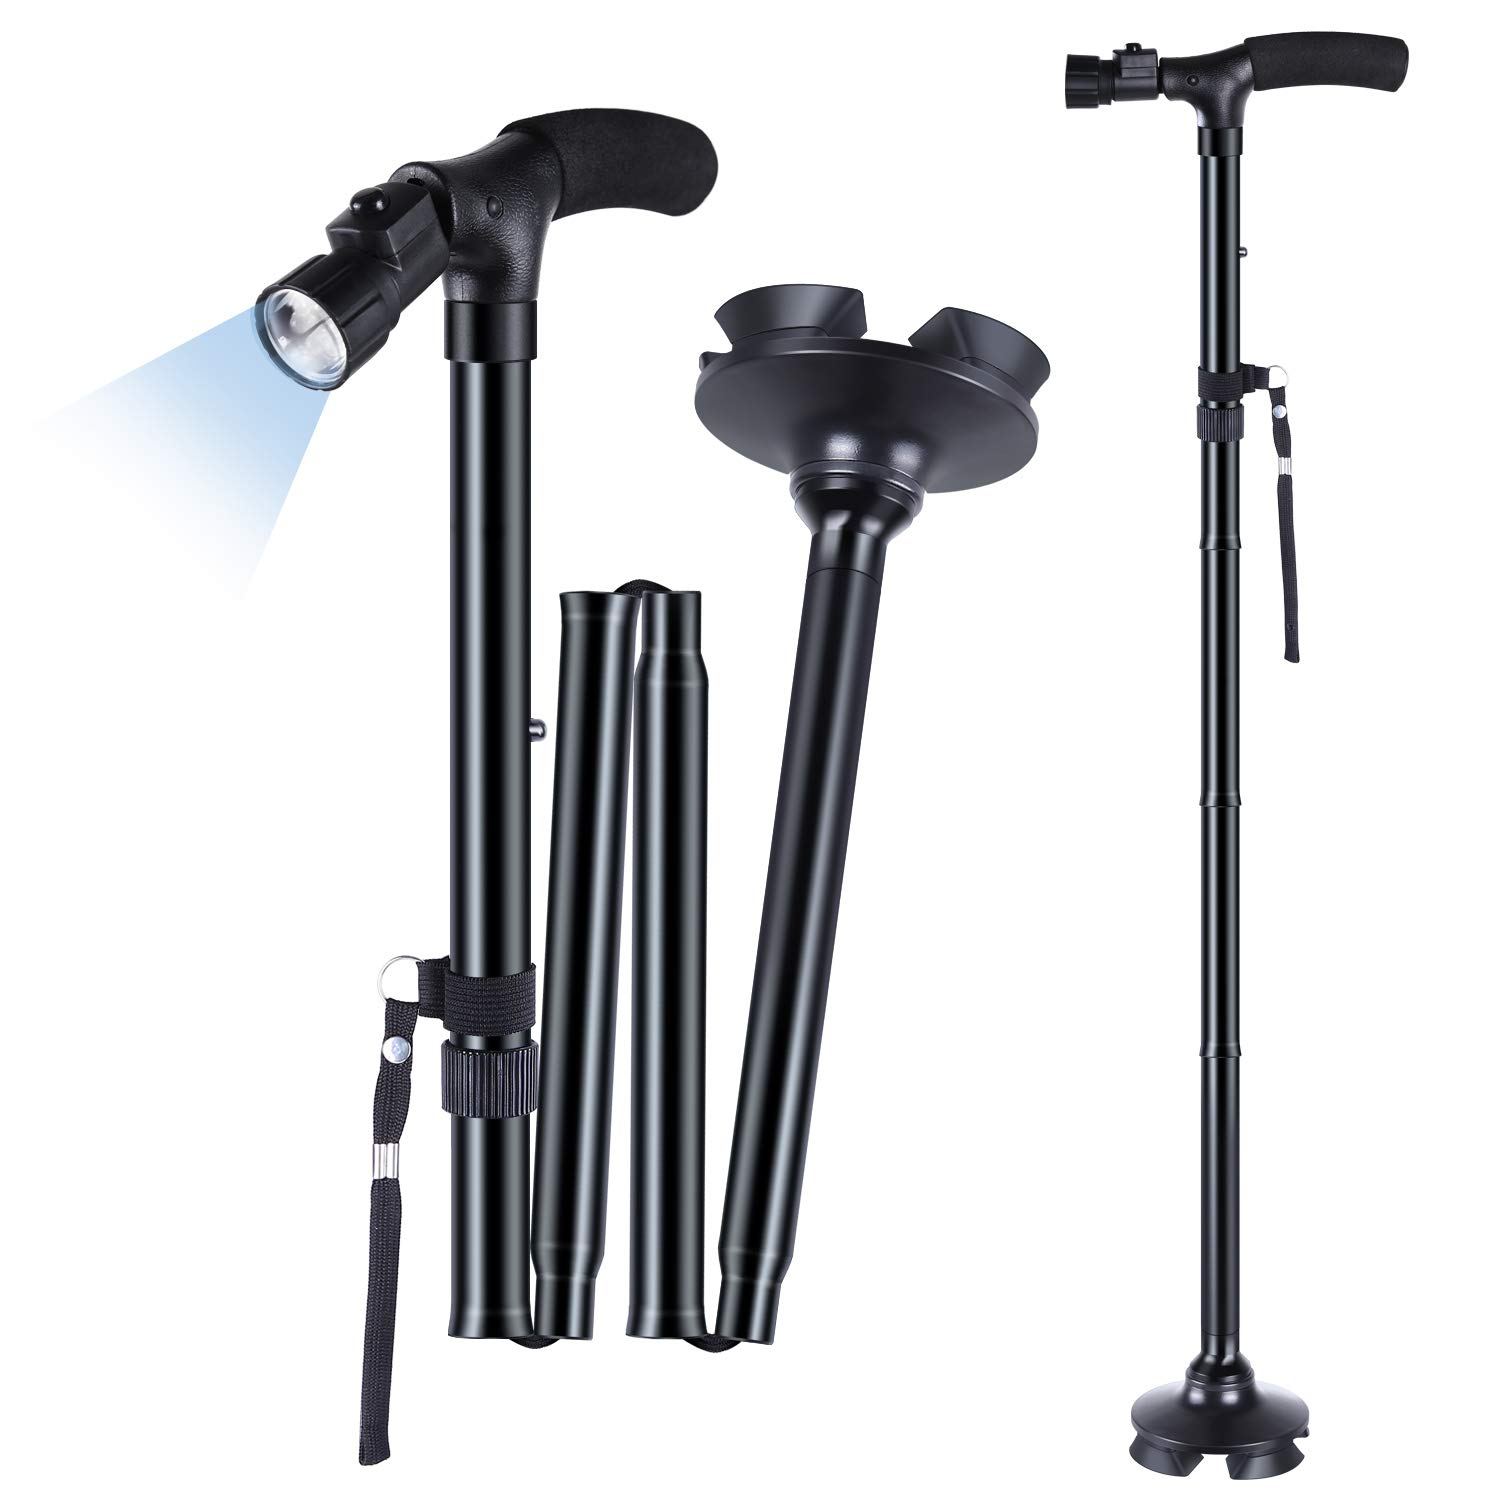 Ohuhu Folding Cane - Foldable Walking Cane for Men, Women, Walking Cane with LED Light, Adjustable Walking Stick with Carrying Bag for Fathers Mothers Gifts